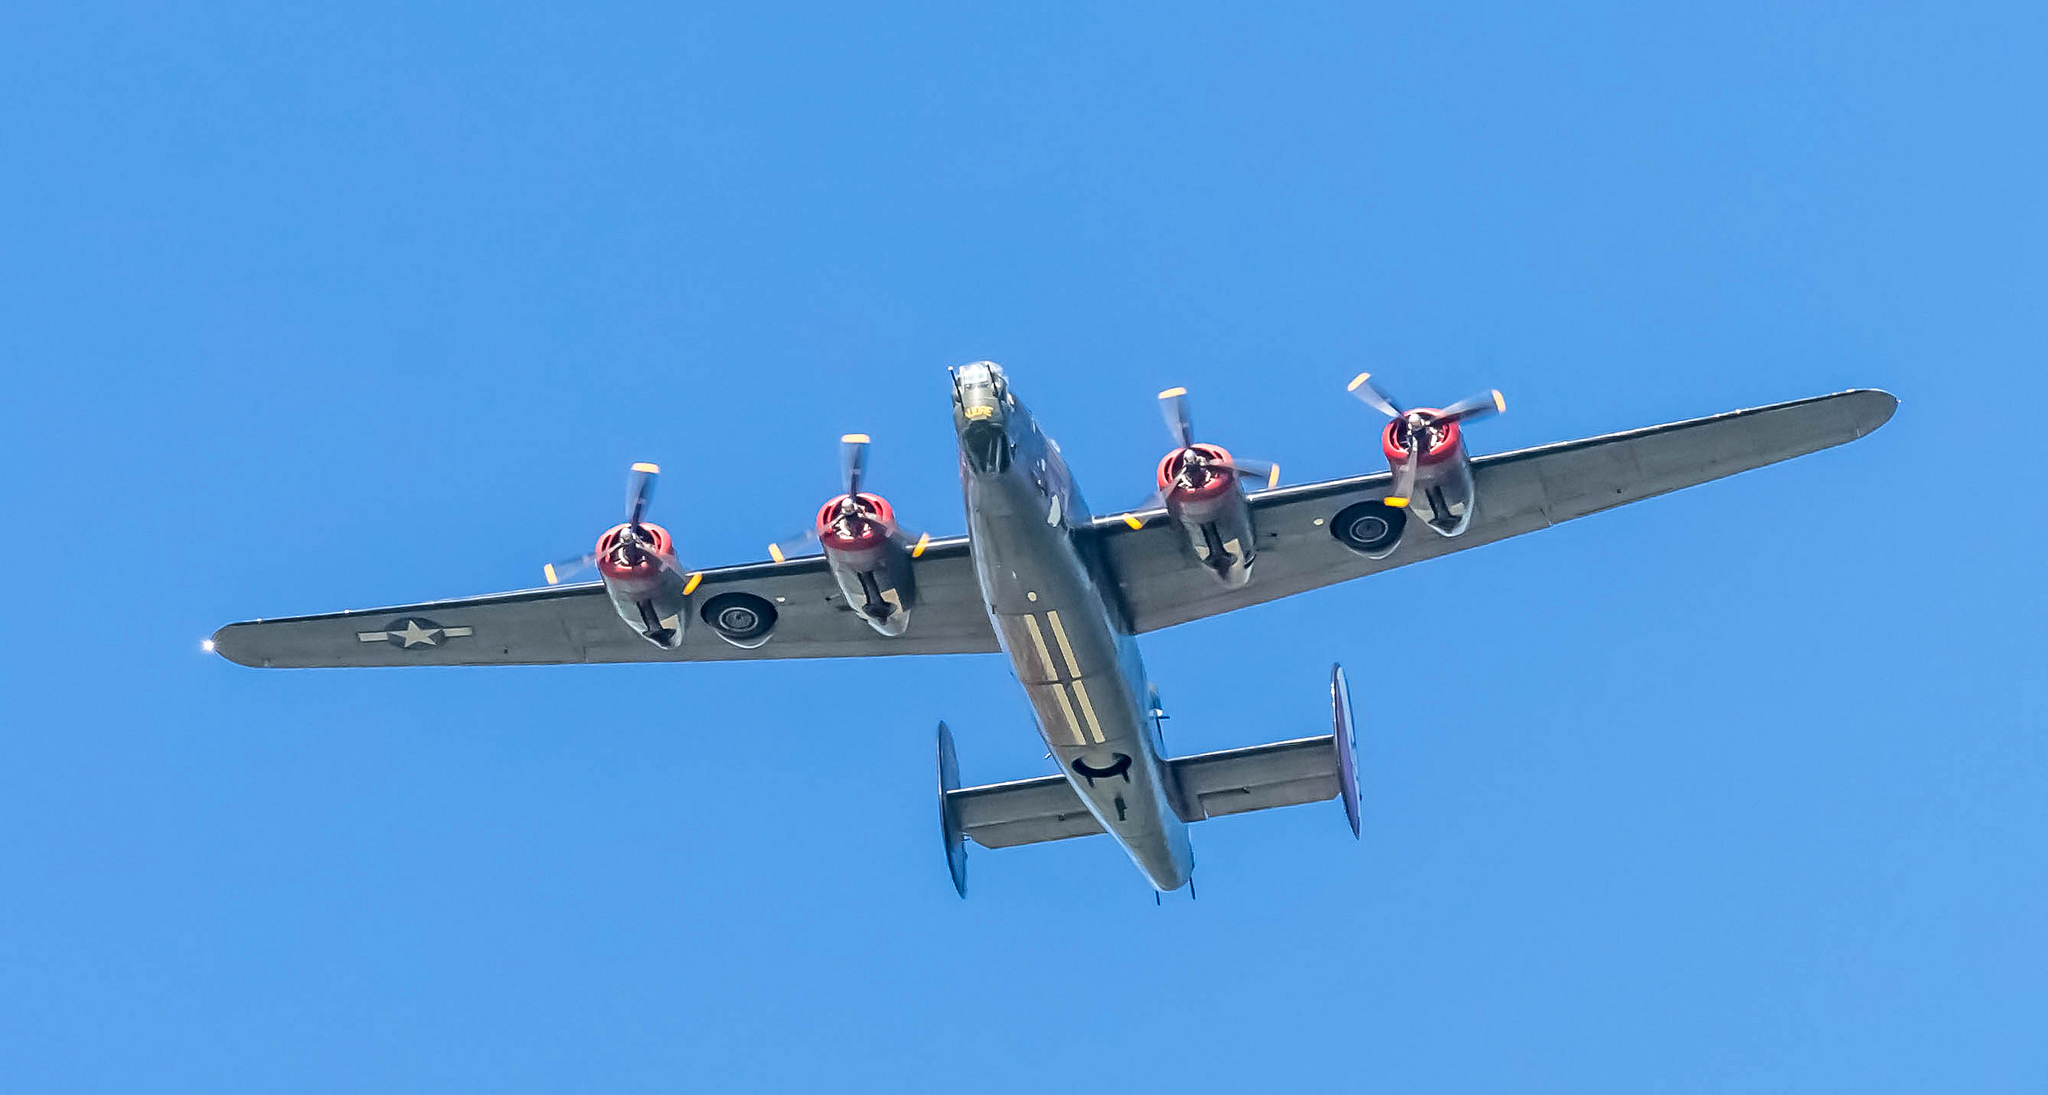 2048x1095 - Consolidated B-24 Liberator Wallpapers 14